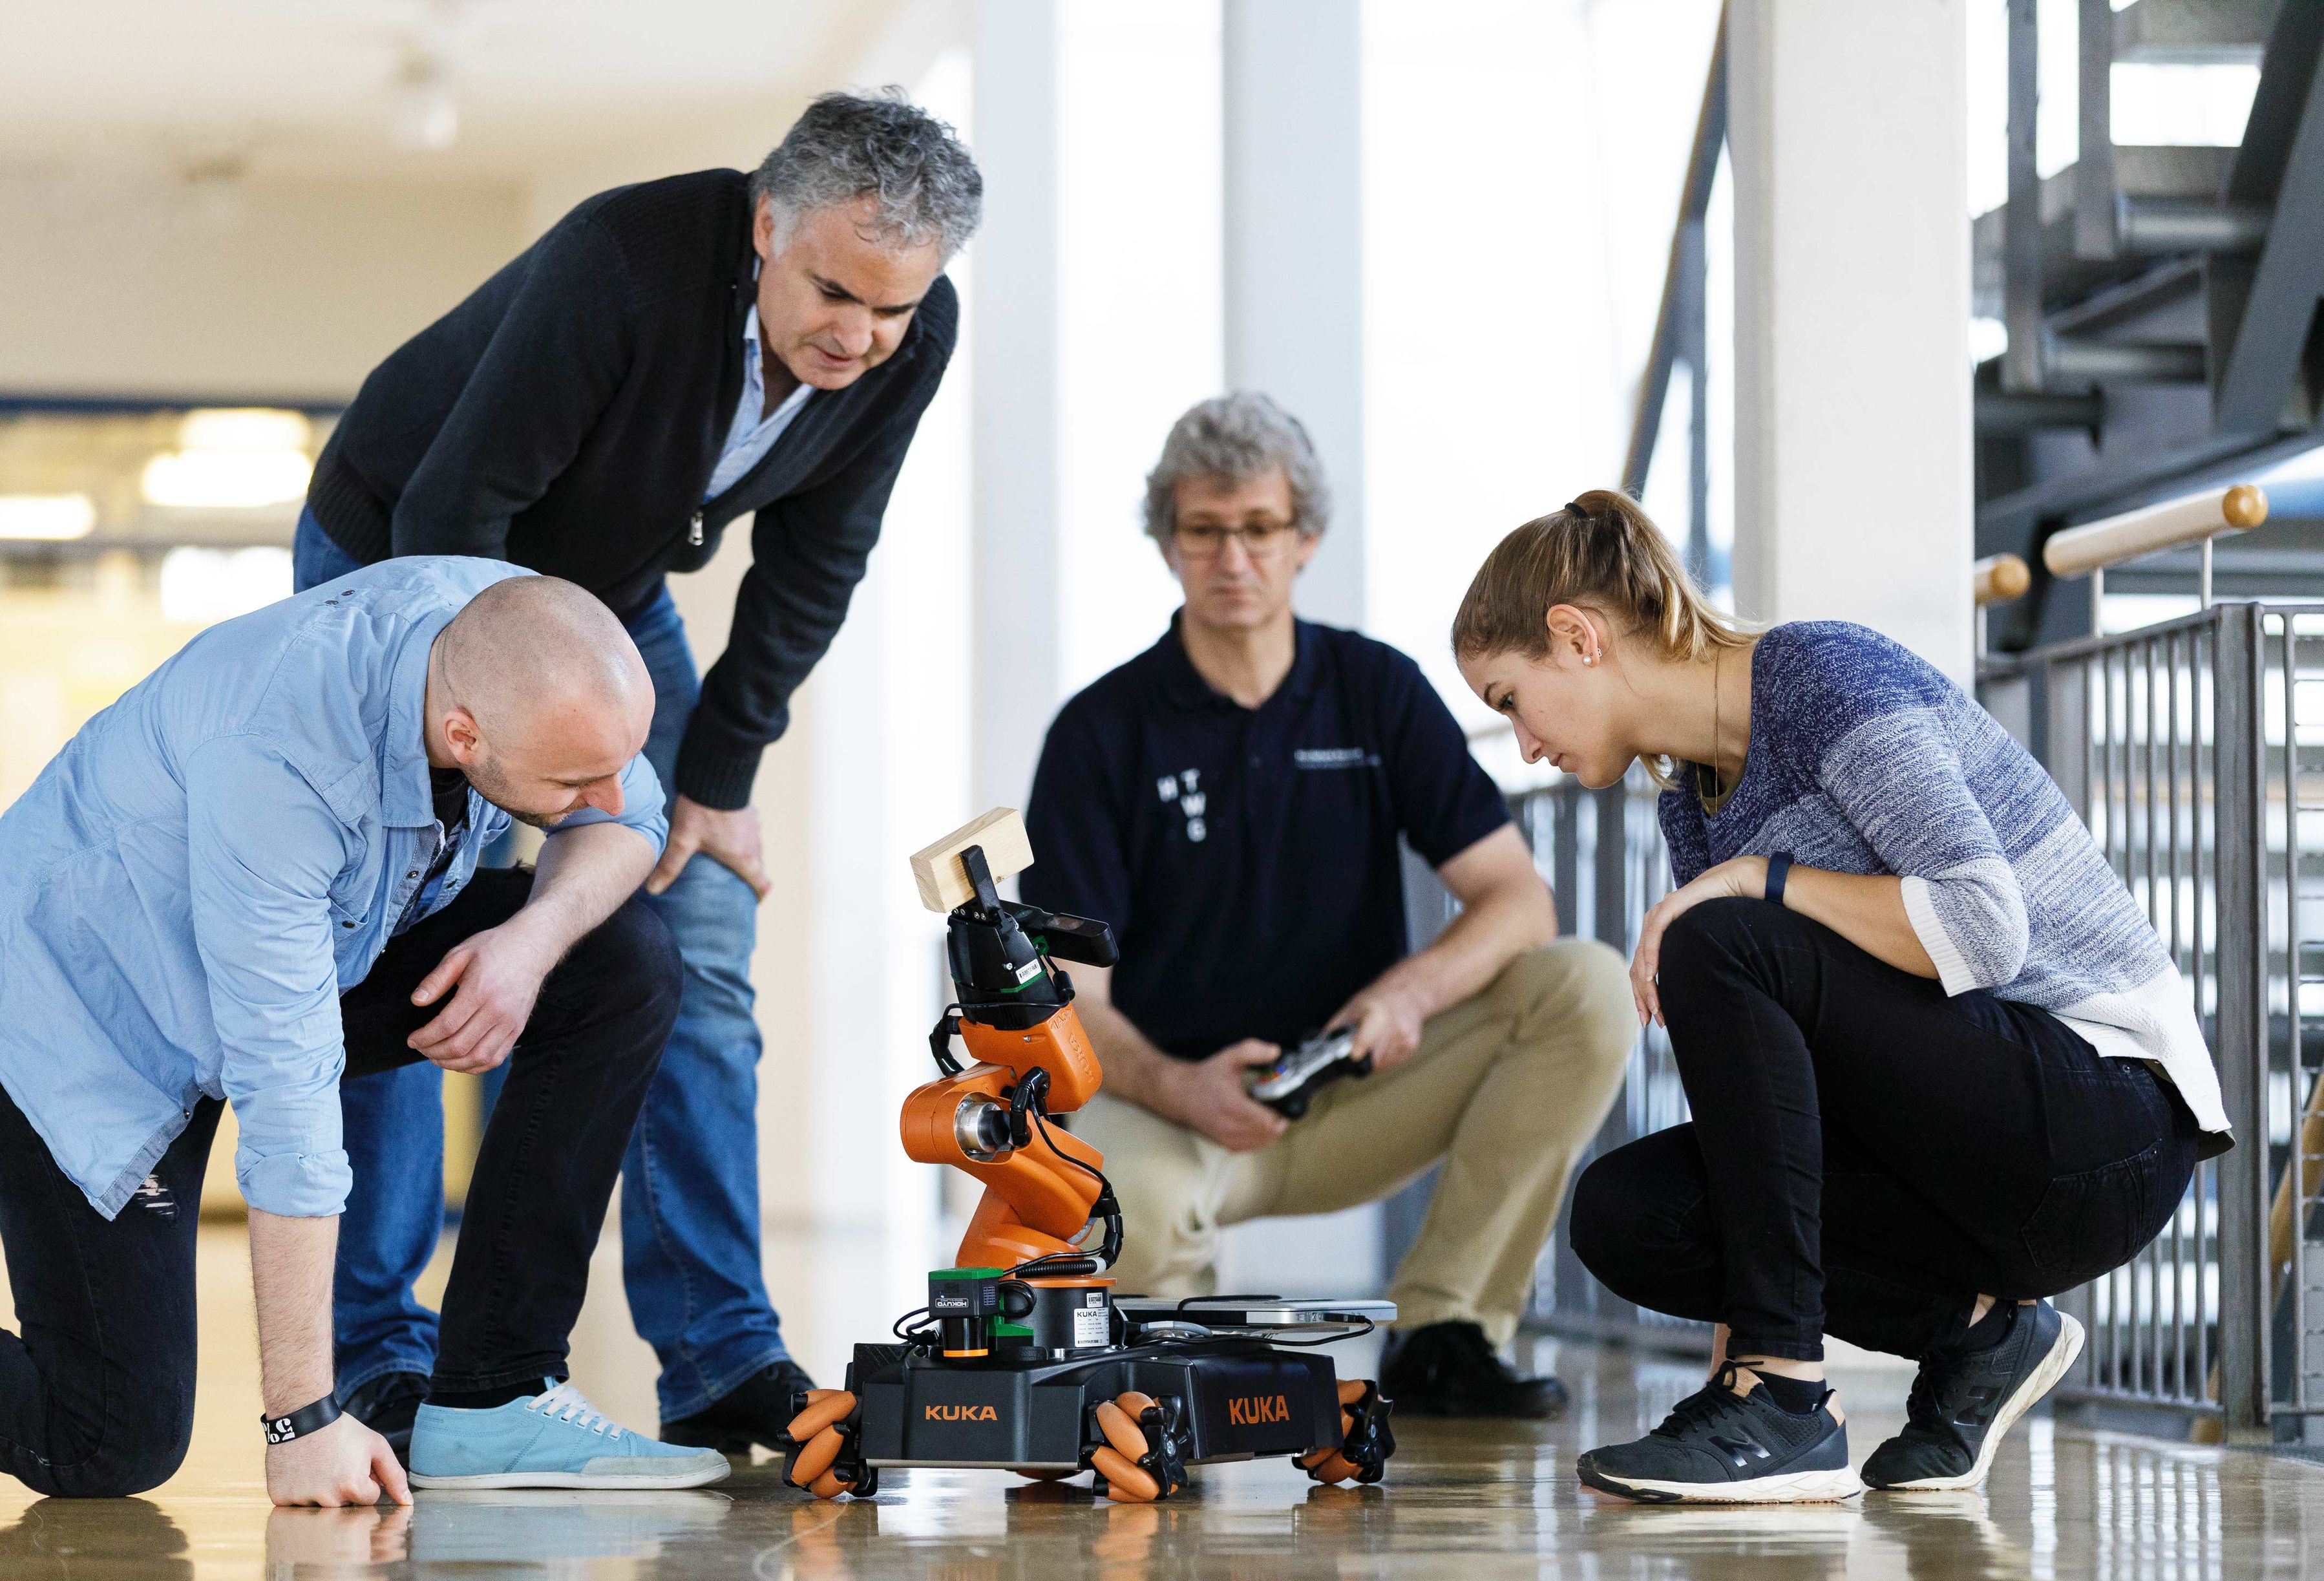 Professor and Student with the KUKA robot.